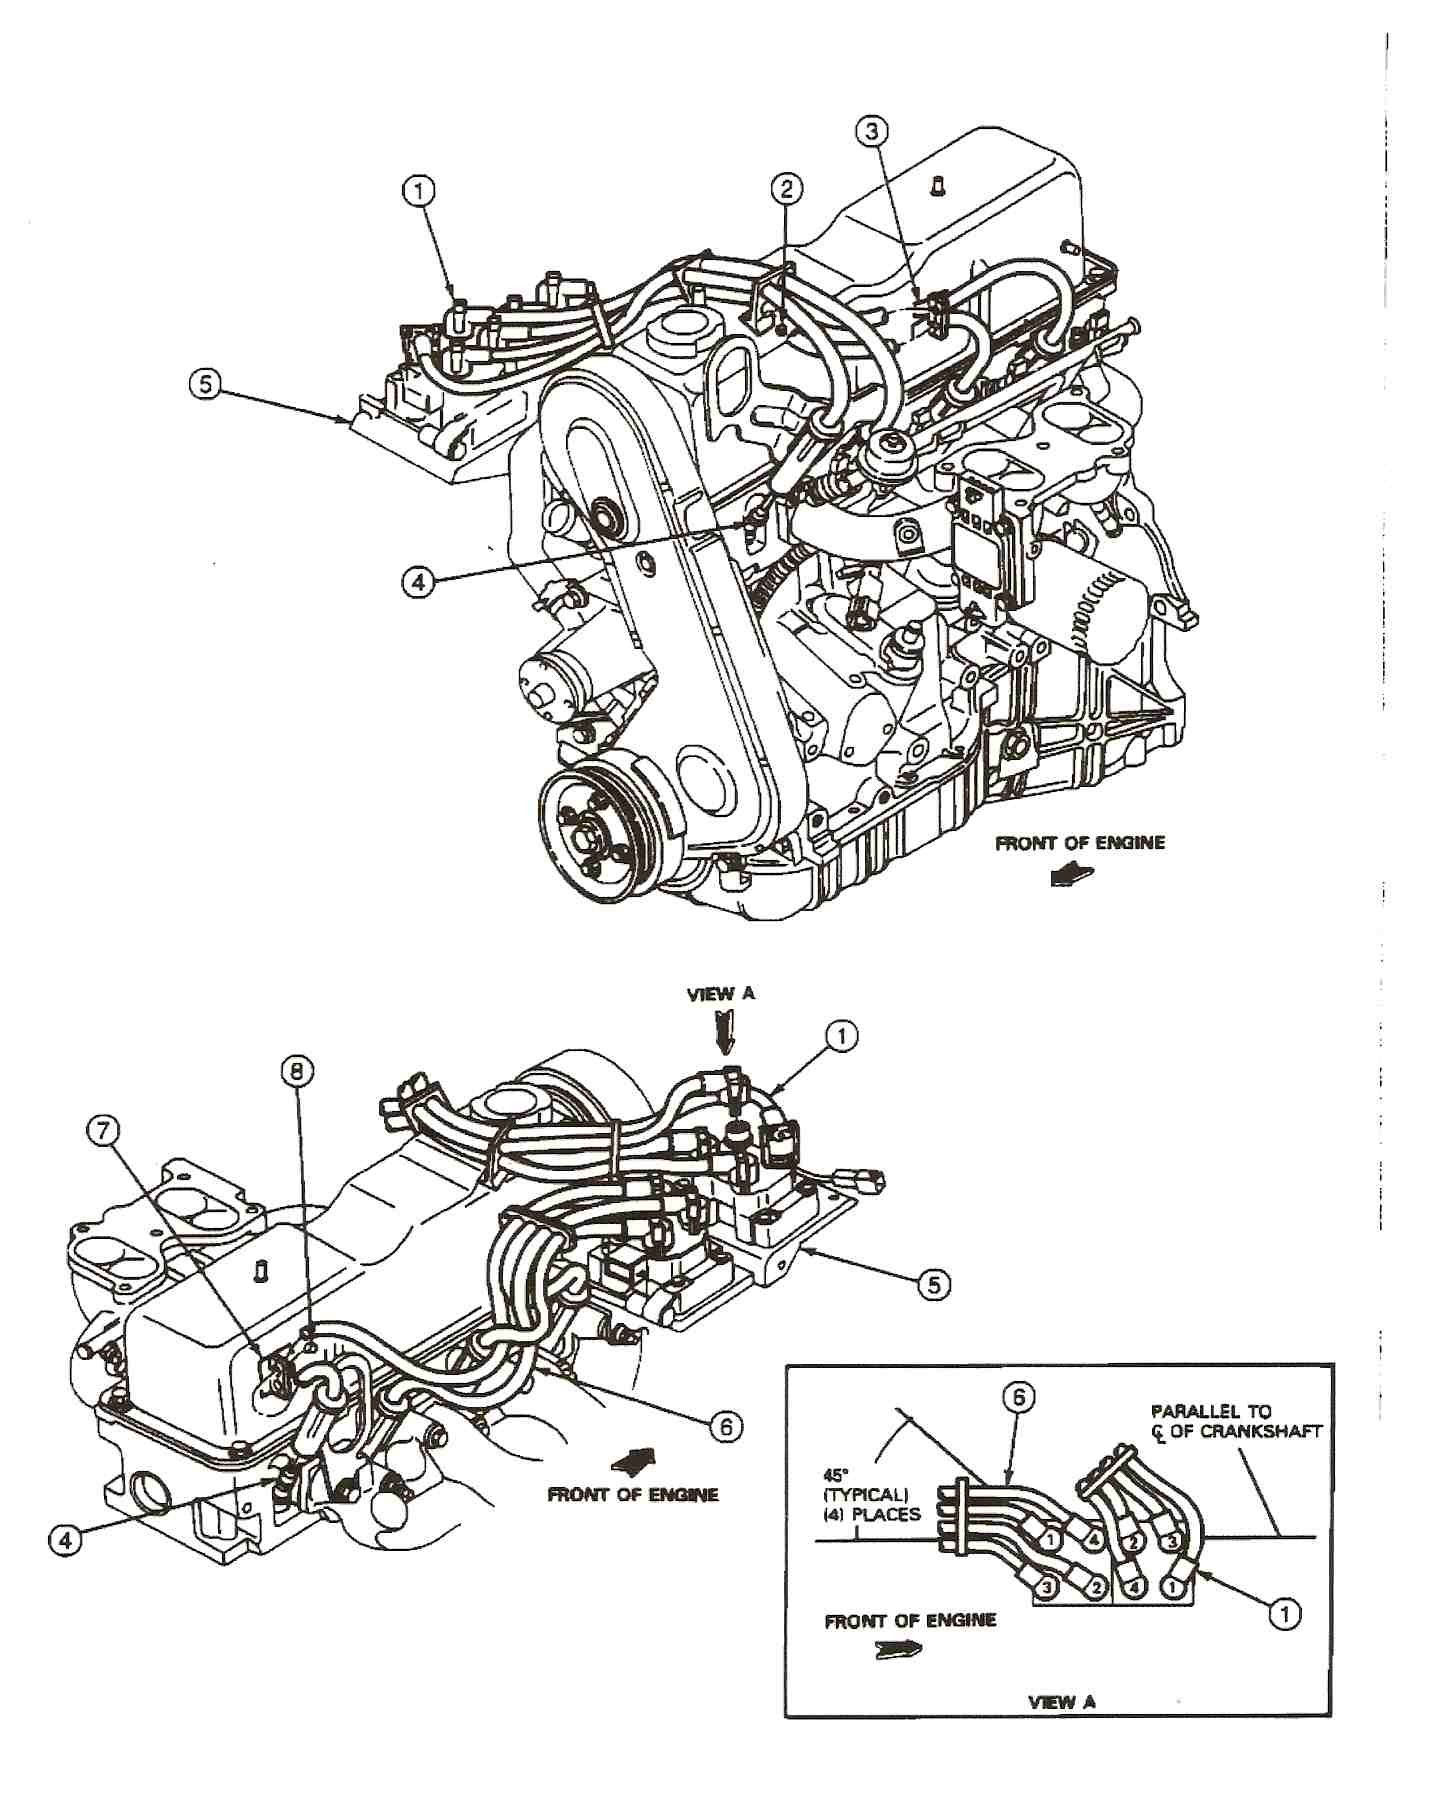 Mazda B3000 Engine Diagram Mazda B2300 Parts Diagram Wiring Info • Of Mazda  B3000 Engine Diagram